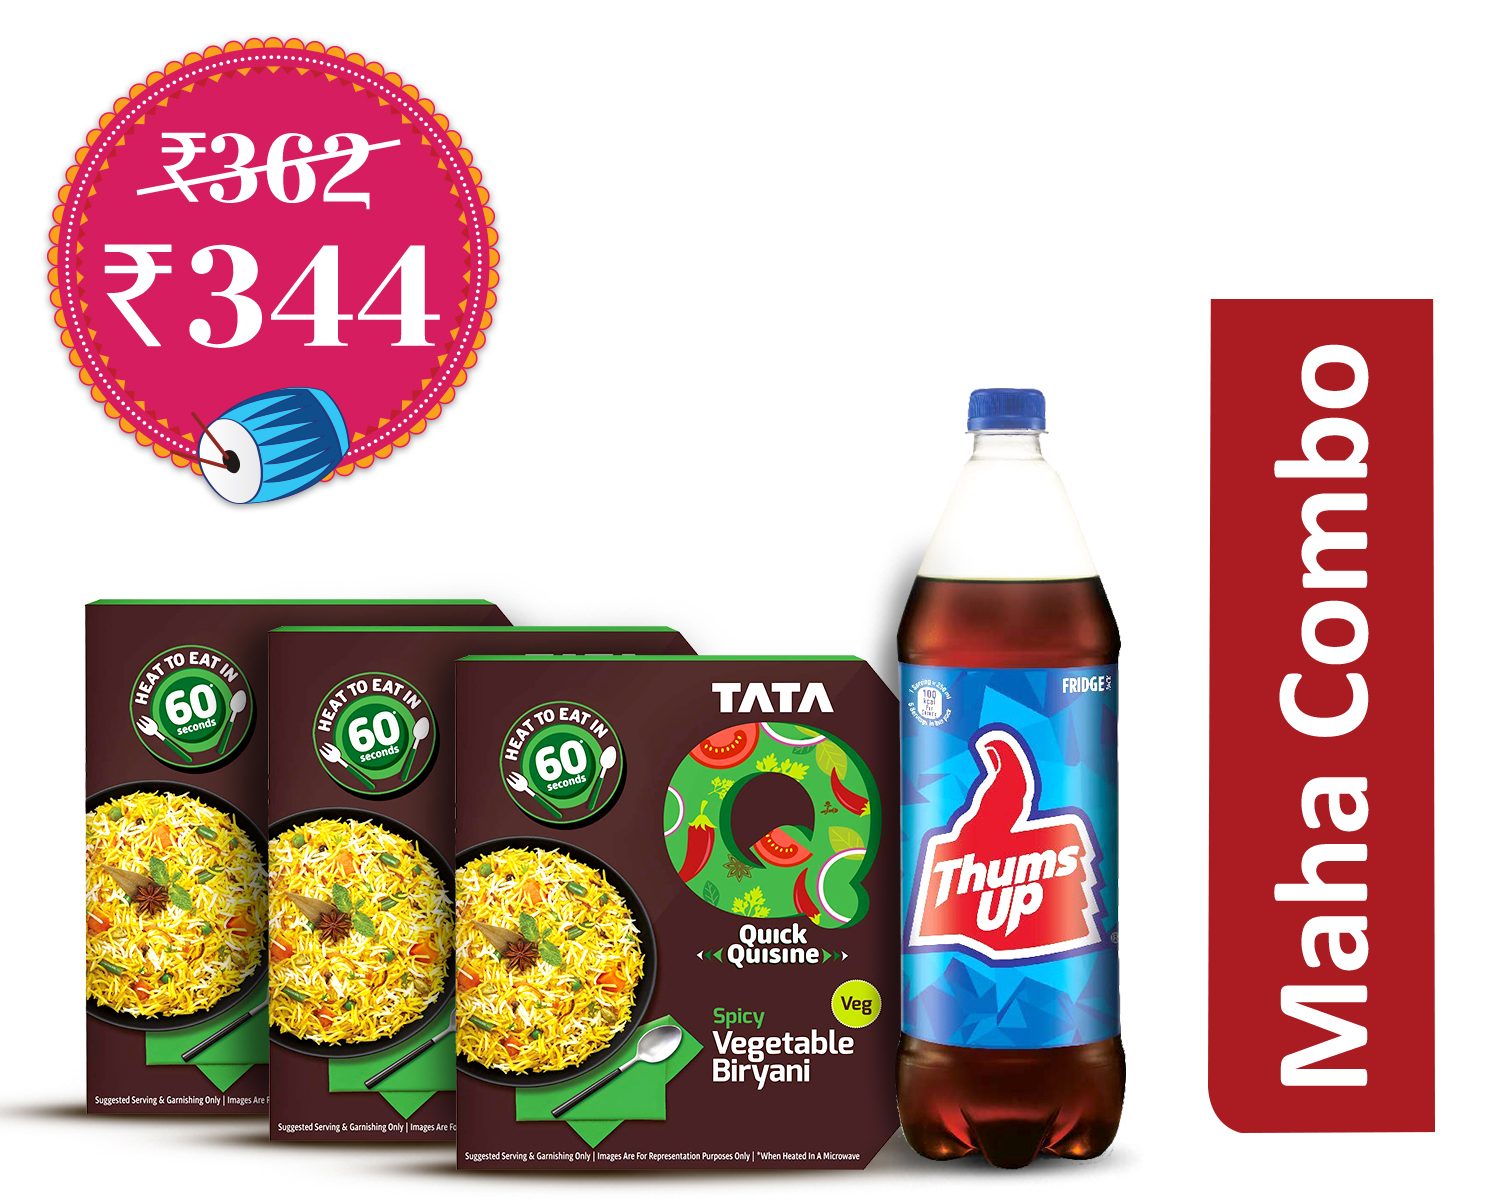 Veggie Dinner Delights (1Unit) : TataQ Spicy Vegetable Biryani * 3 + Thums Up 1.25Ltr